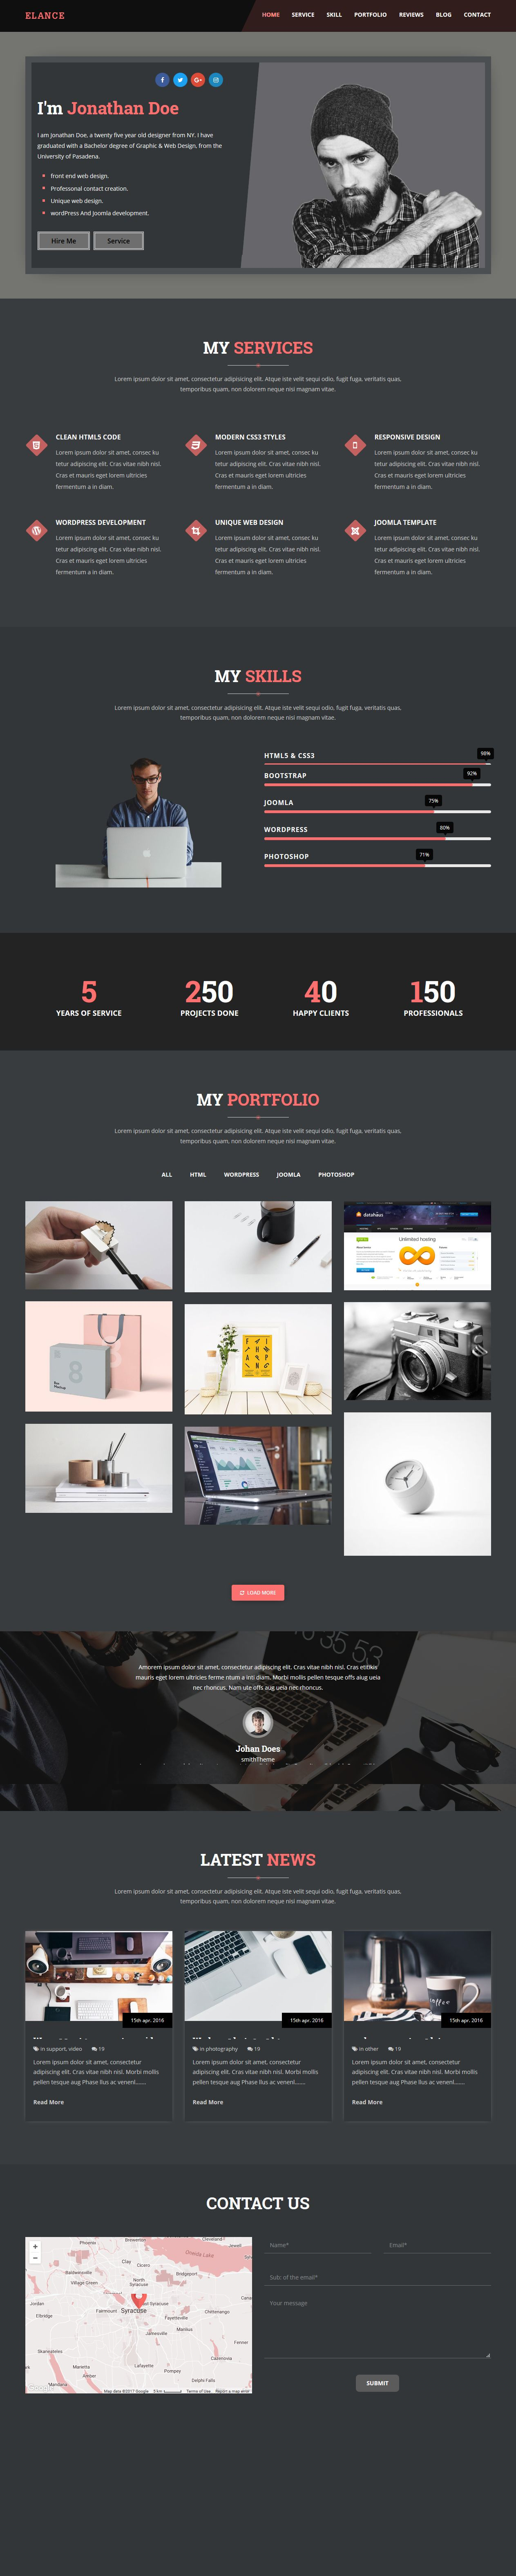 Elance - Personal Portfolio One Page Template Screenshot 1